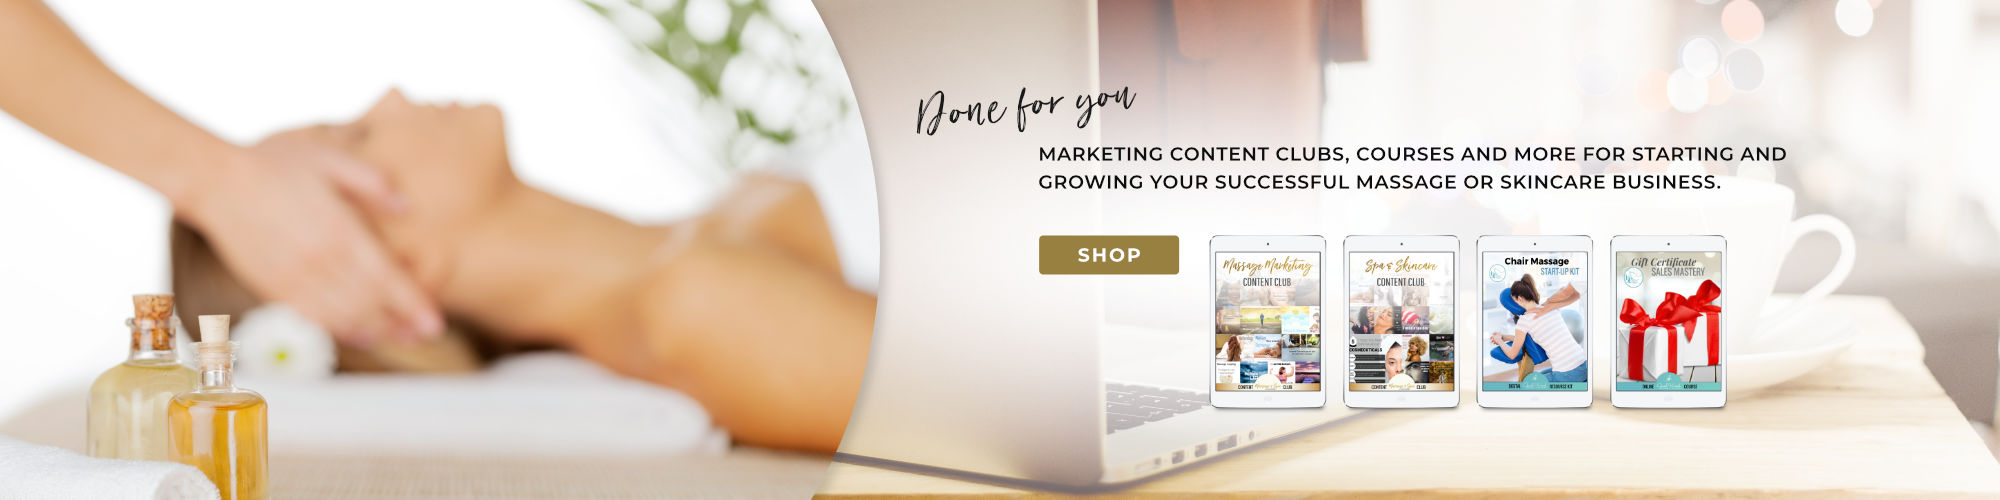 Massage and Spa Success: Done-for-you marketing content clubs, courses, and more for starting and growing your successful massage or spa business.